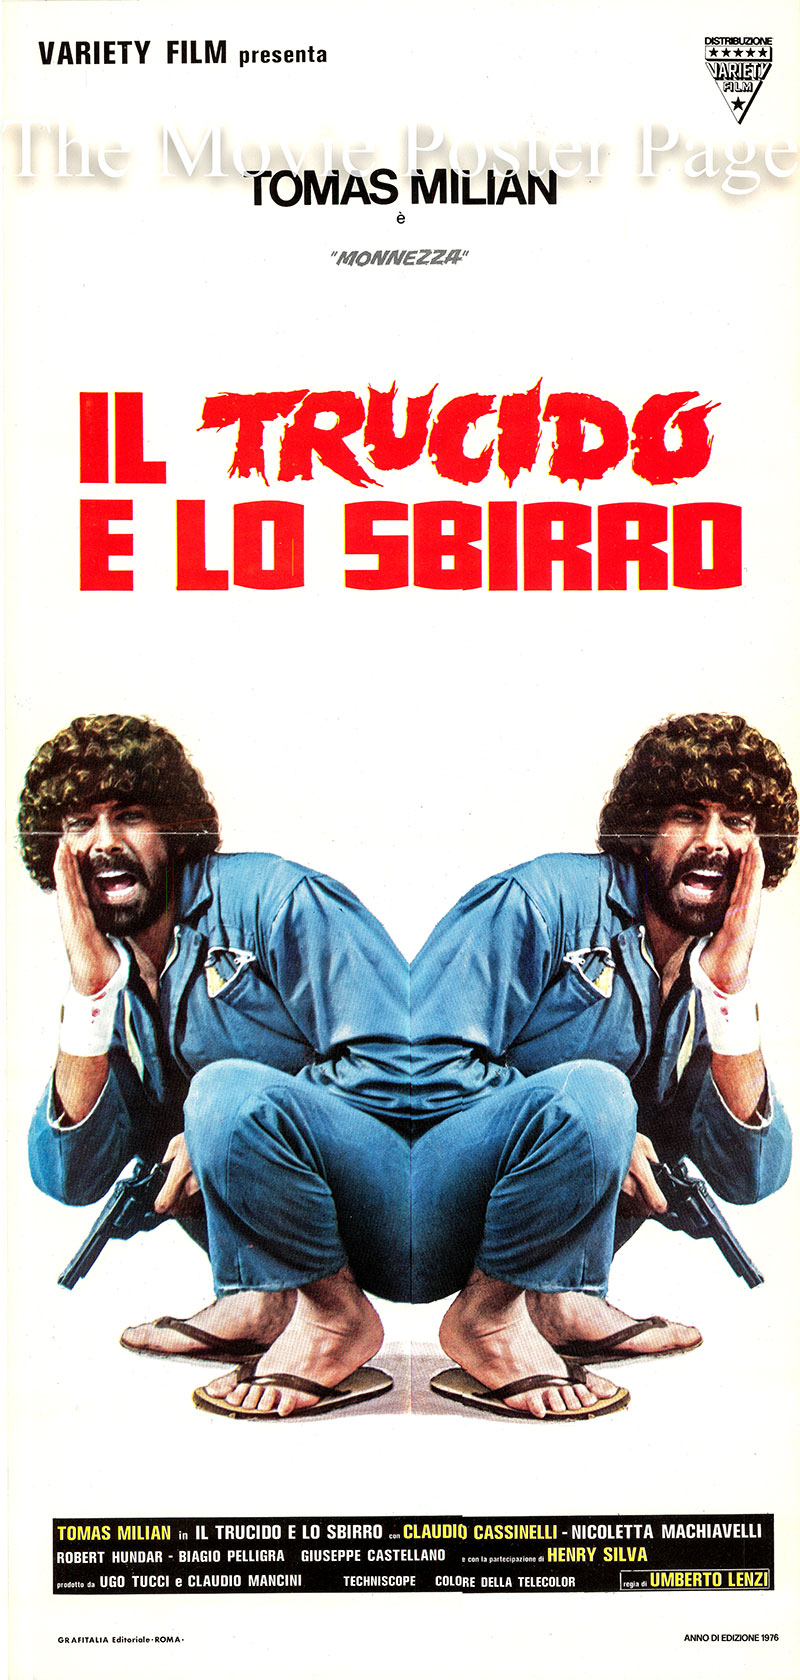 Pictured is an Italian locandina poster for the 1976 Umberto Lenzi film Free Hand for a Tough Cop starring Thomas Milan as Sergio Marazzi.